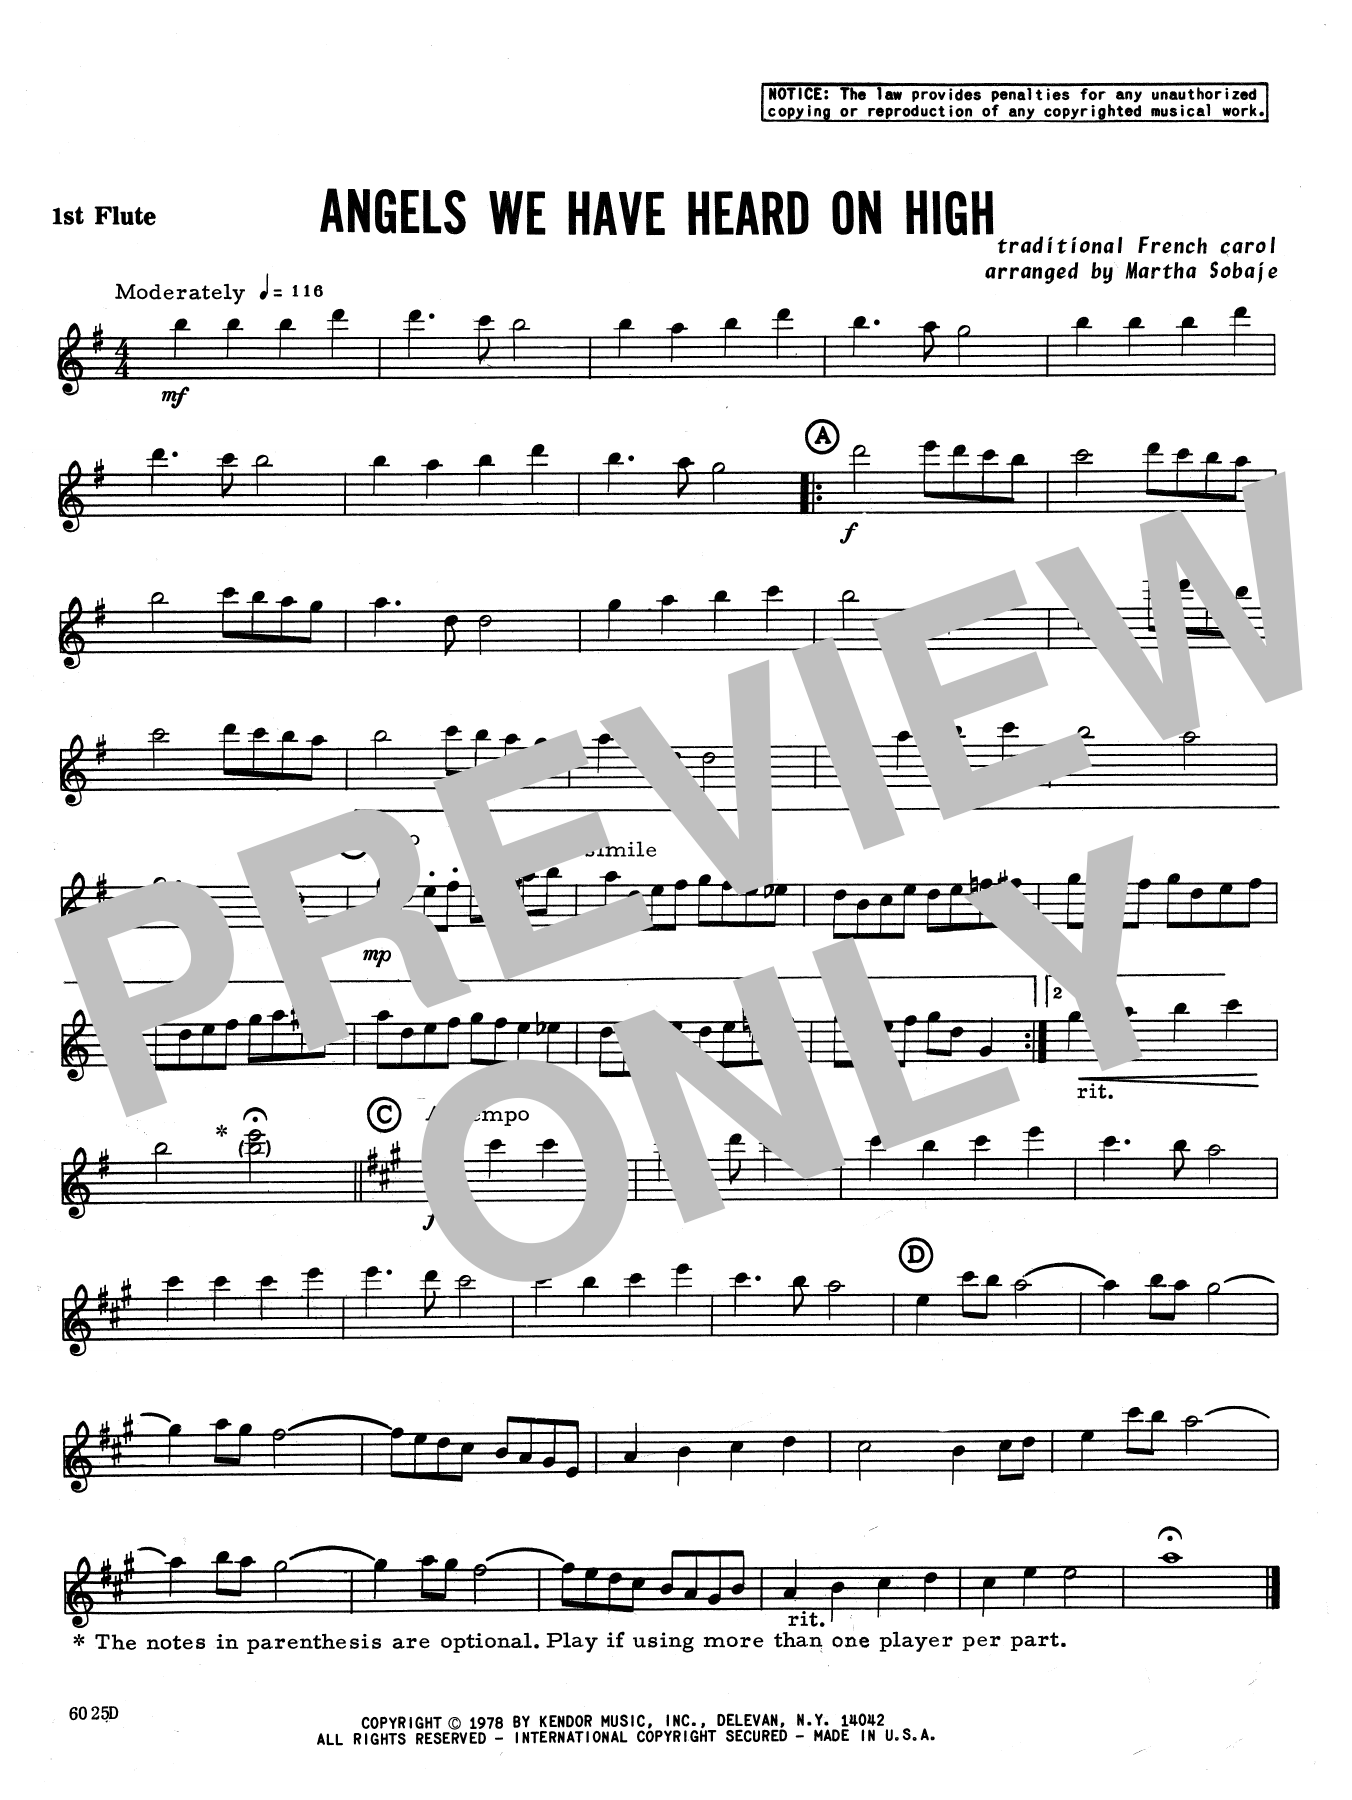 Angels We Have Heard on High - 1st Flute Sheet Music